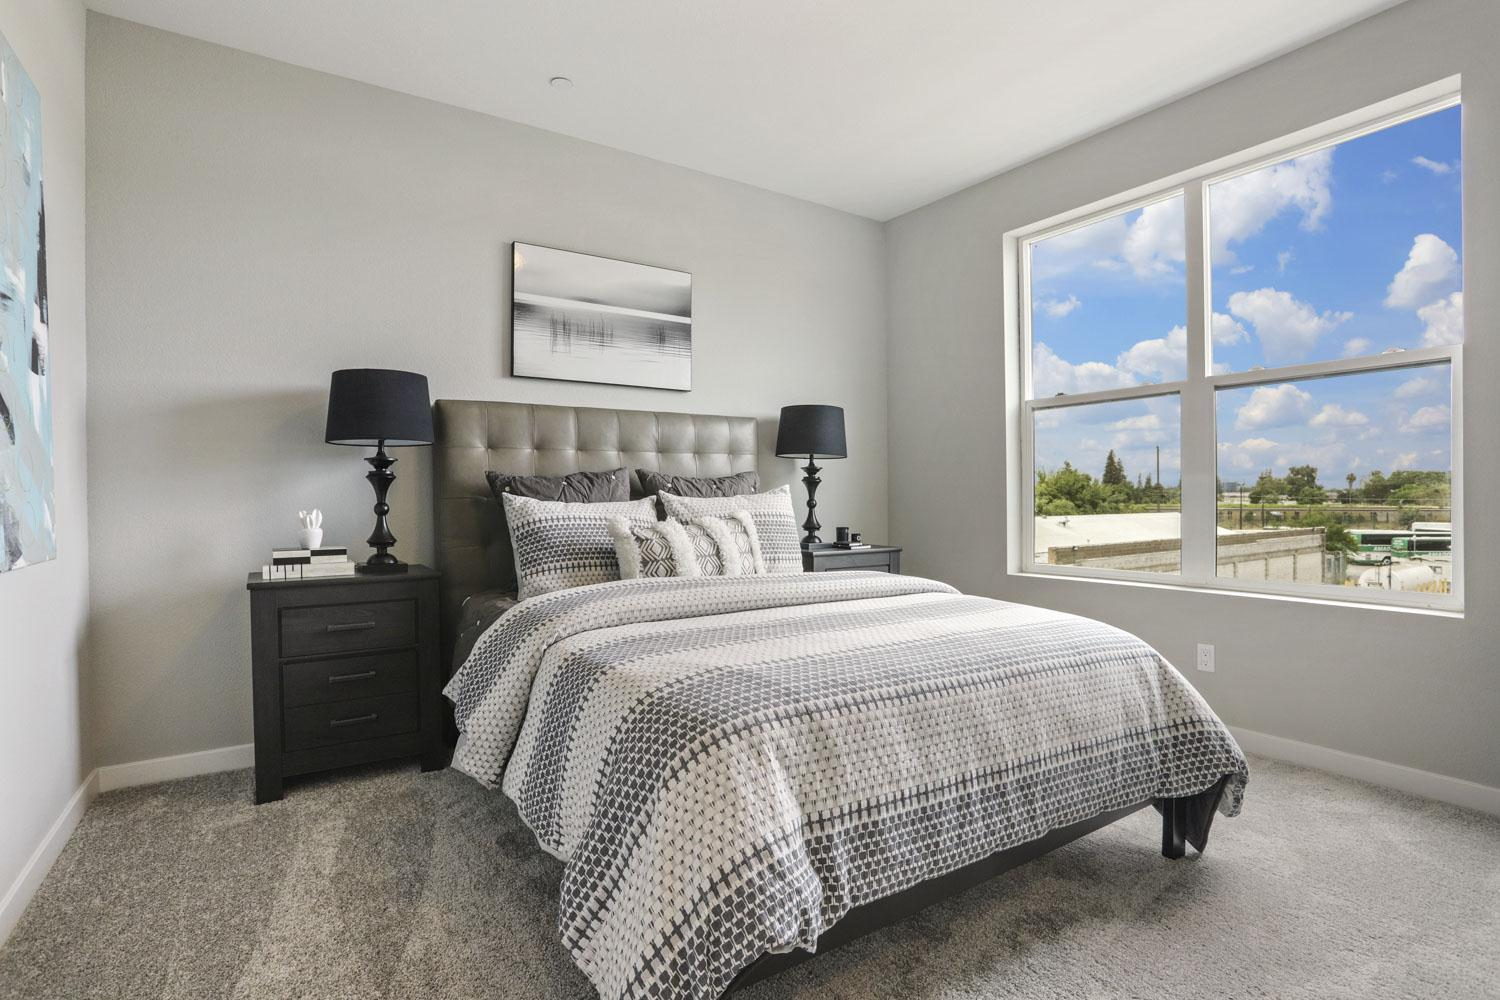 Bedroom featured in the Plan 1 By Next Generation Capital  in Sacramento, CA